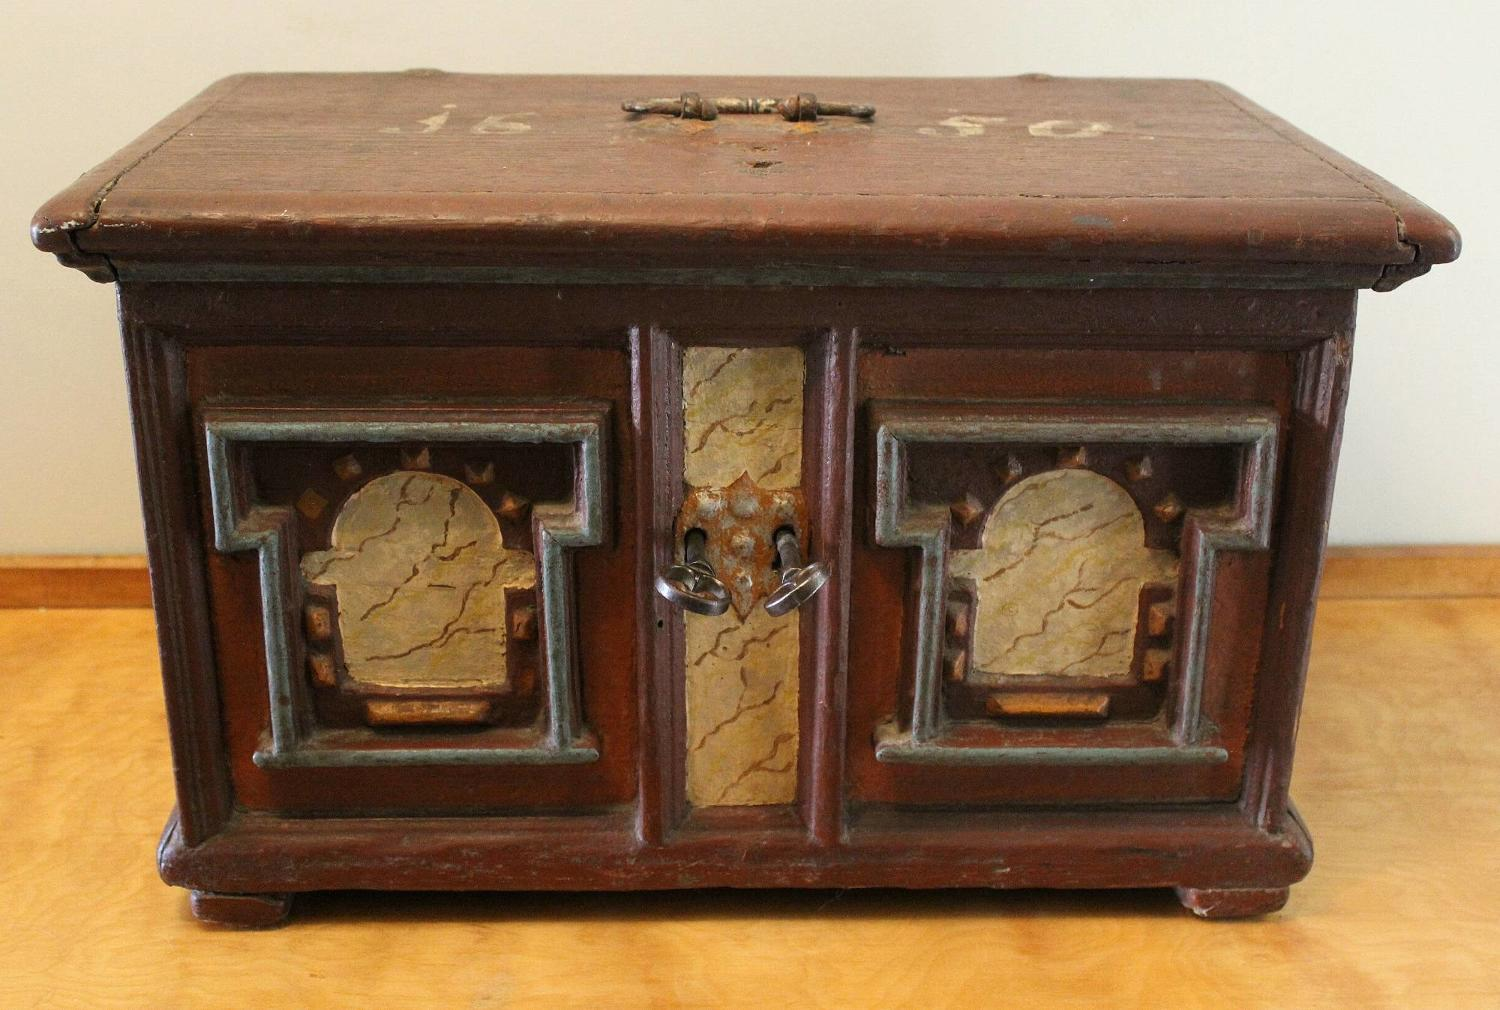 North European 17thC Painted Table Top Casket